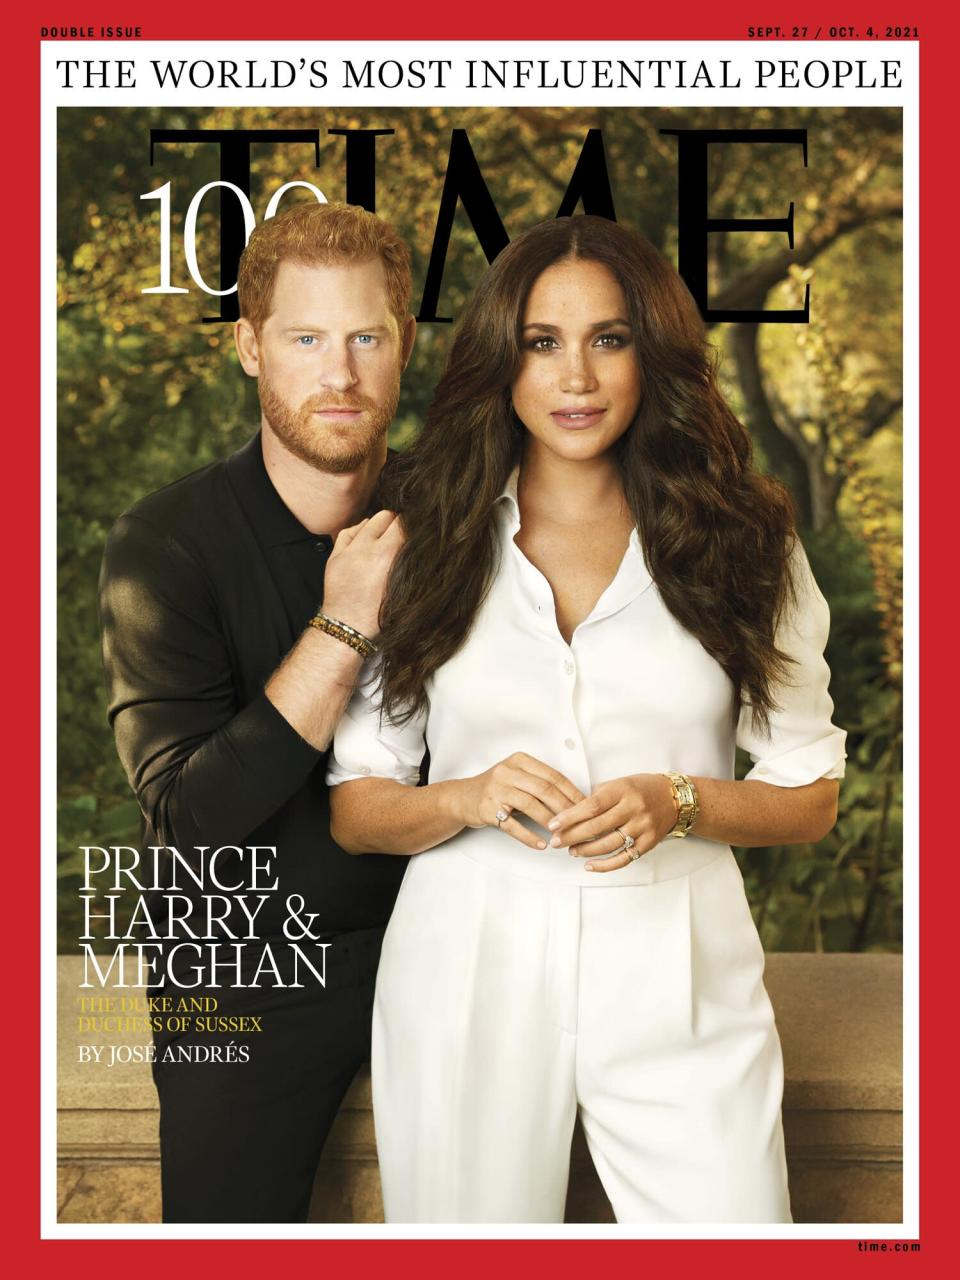 The TIME cover portrait featuring Prince Harry and Meghan